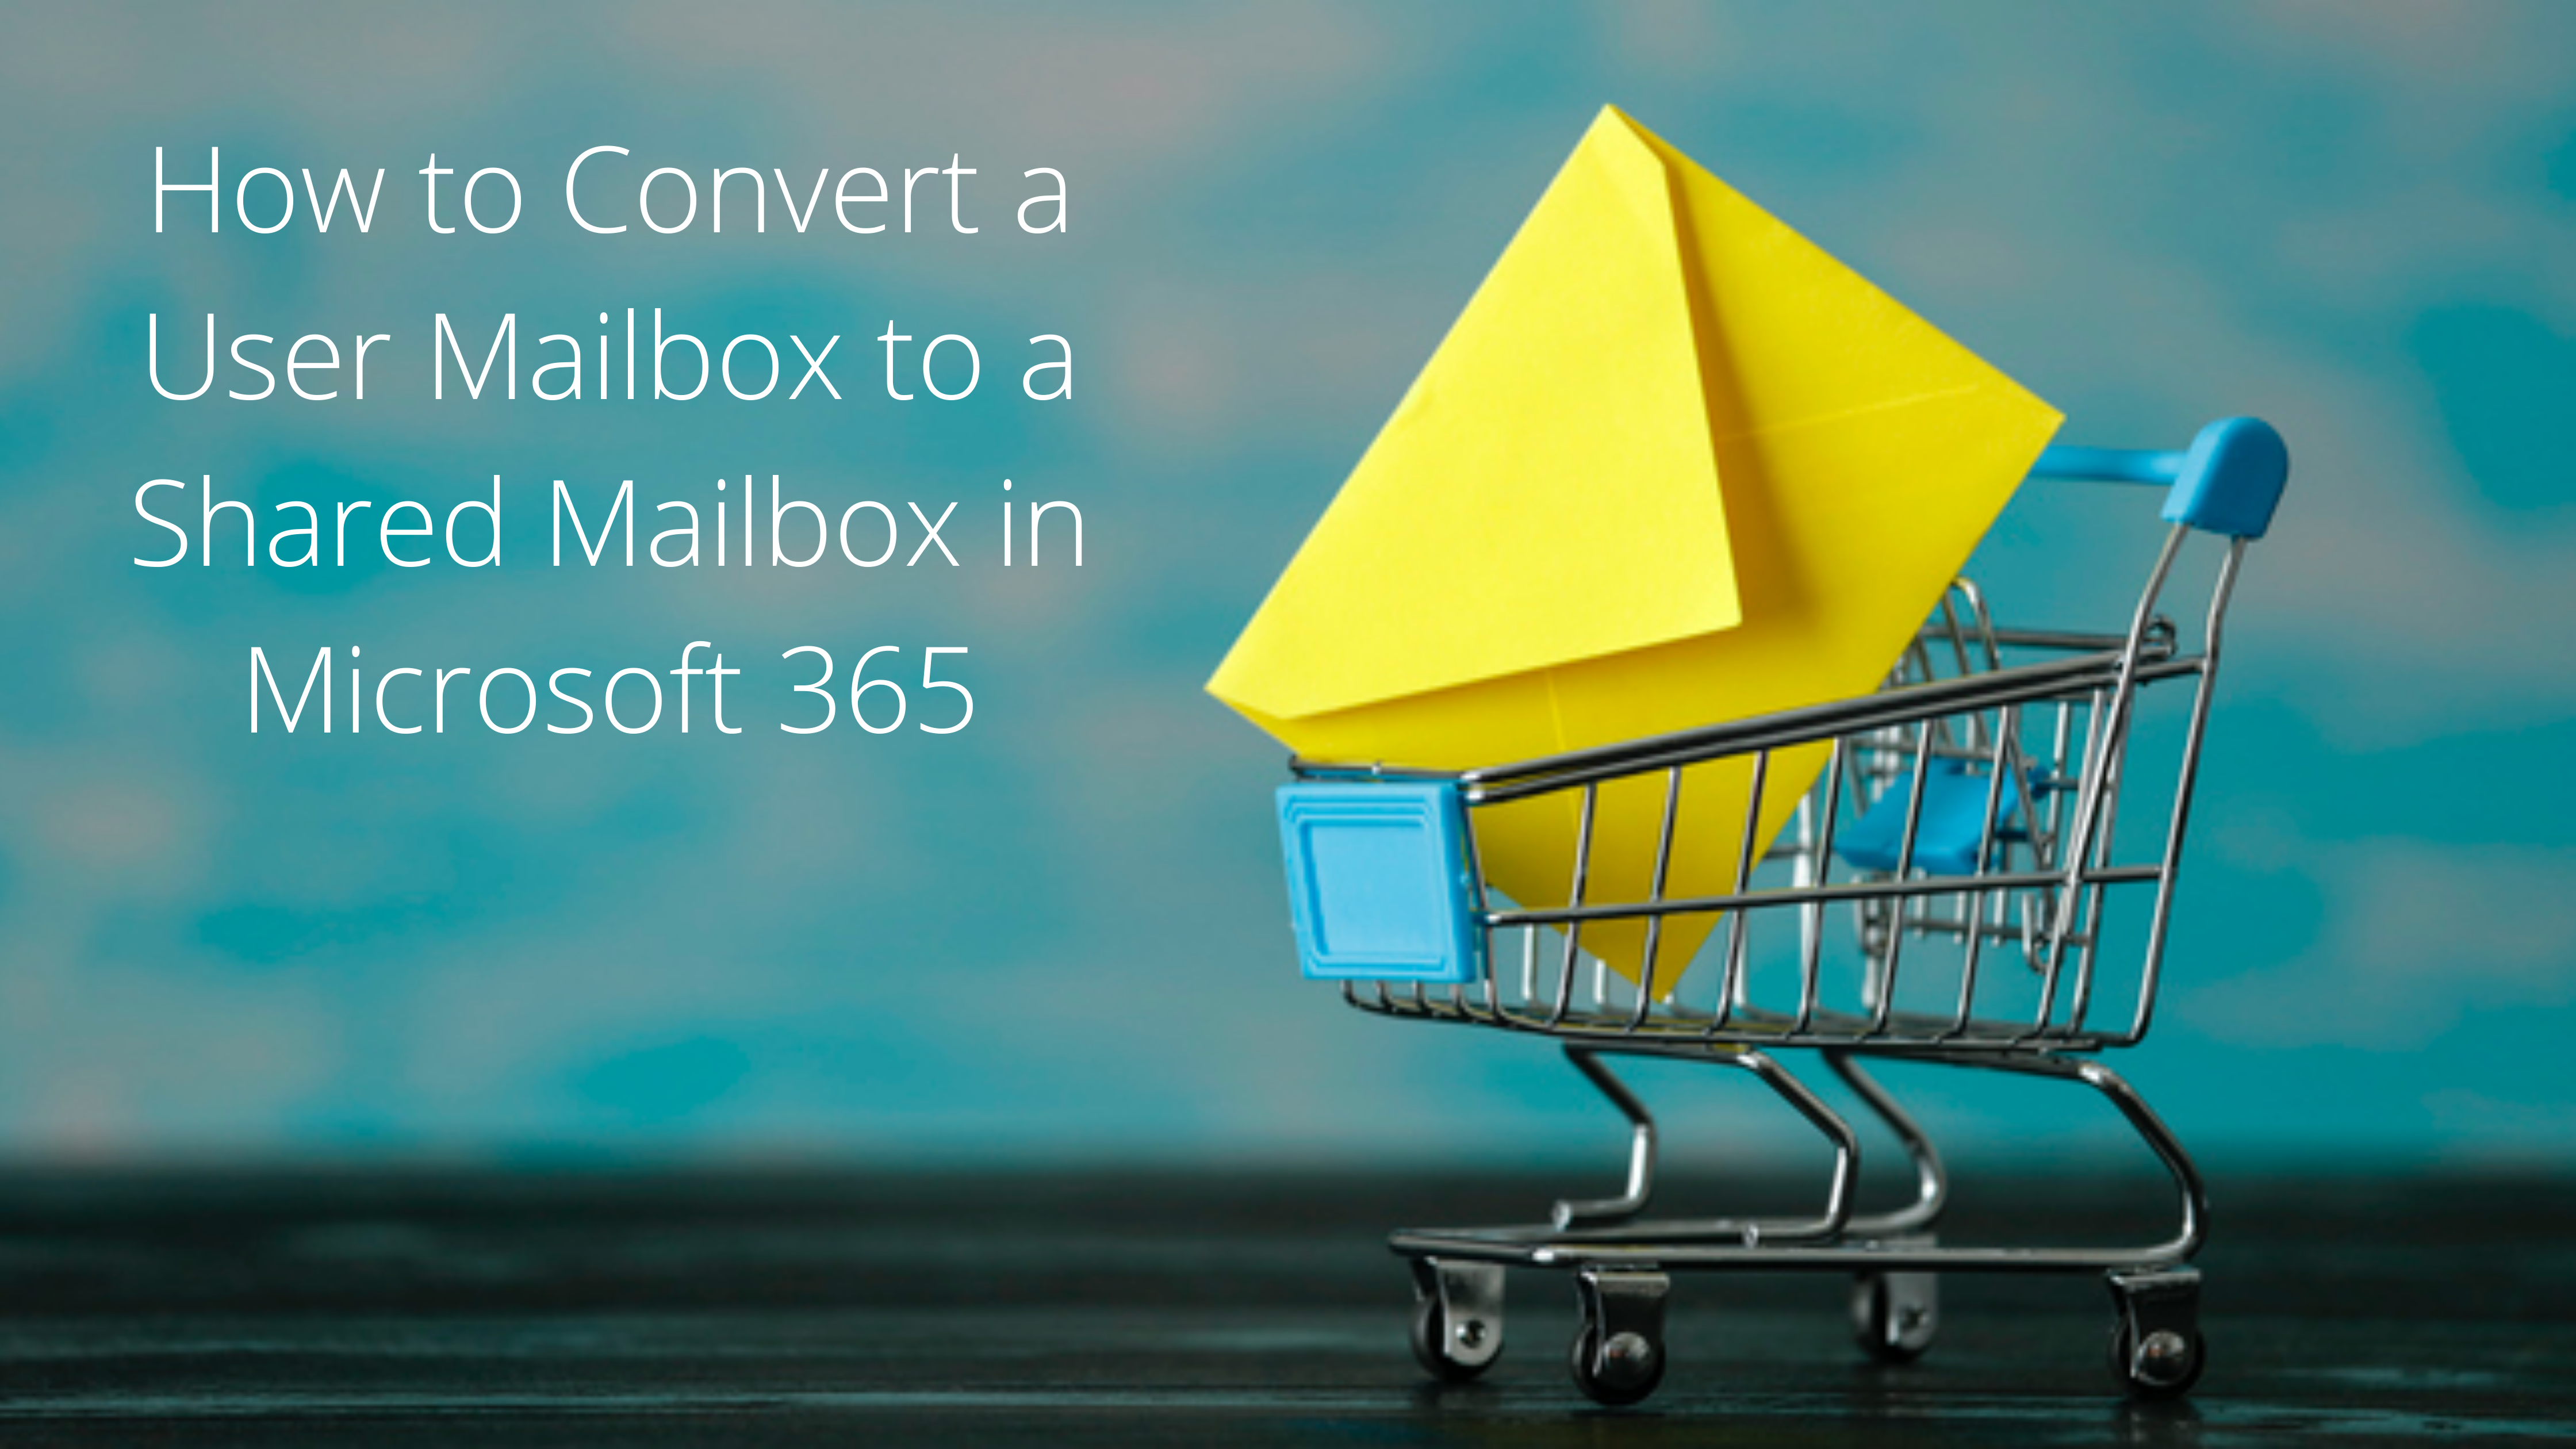 How to Convert a User Mailbox to a Shared Mailbox in Microsoft 365